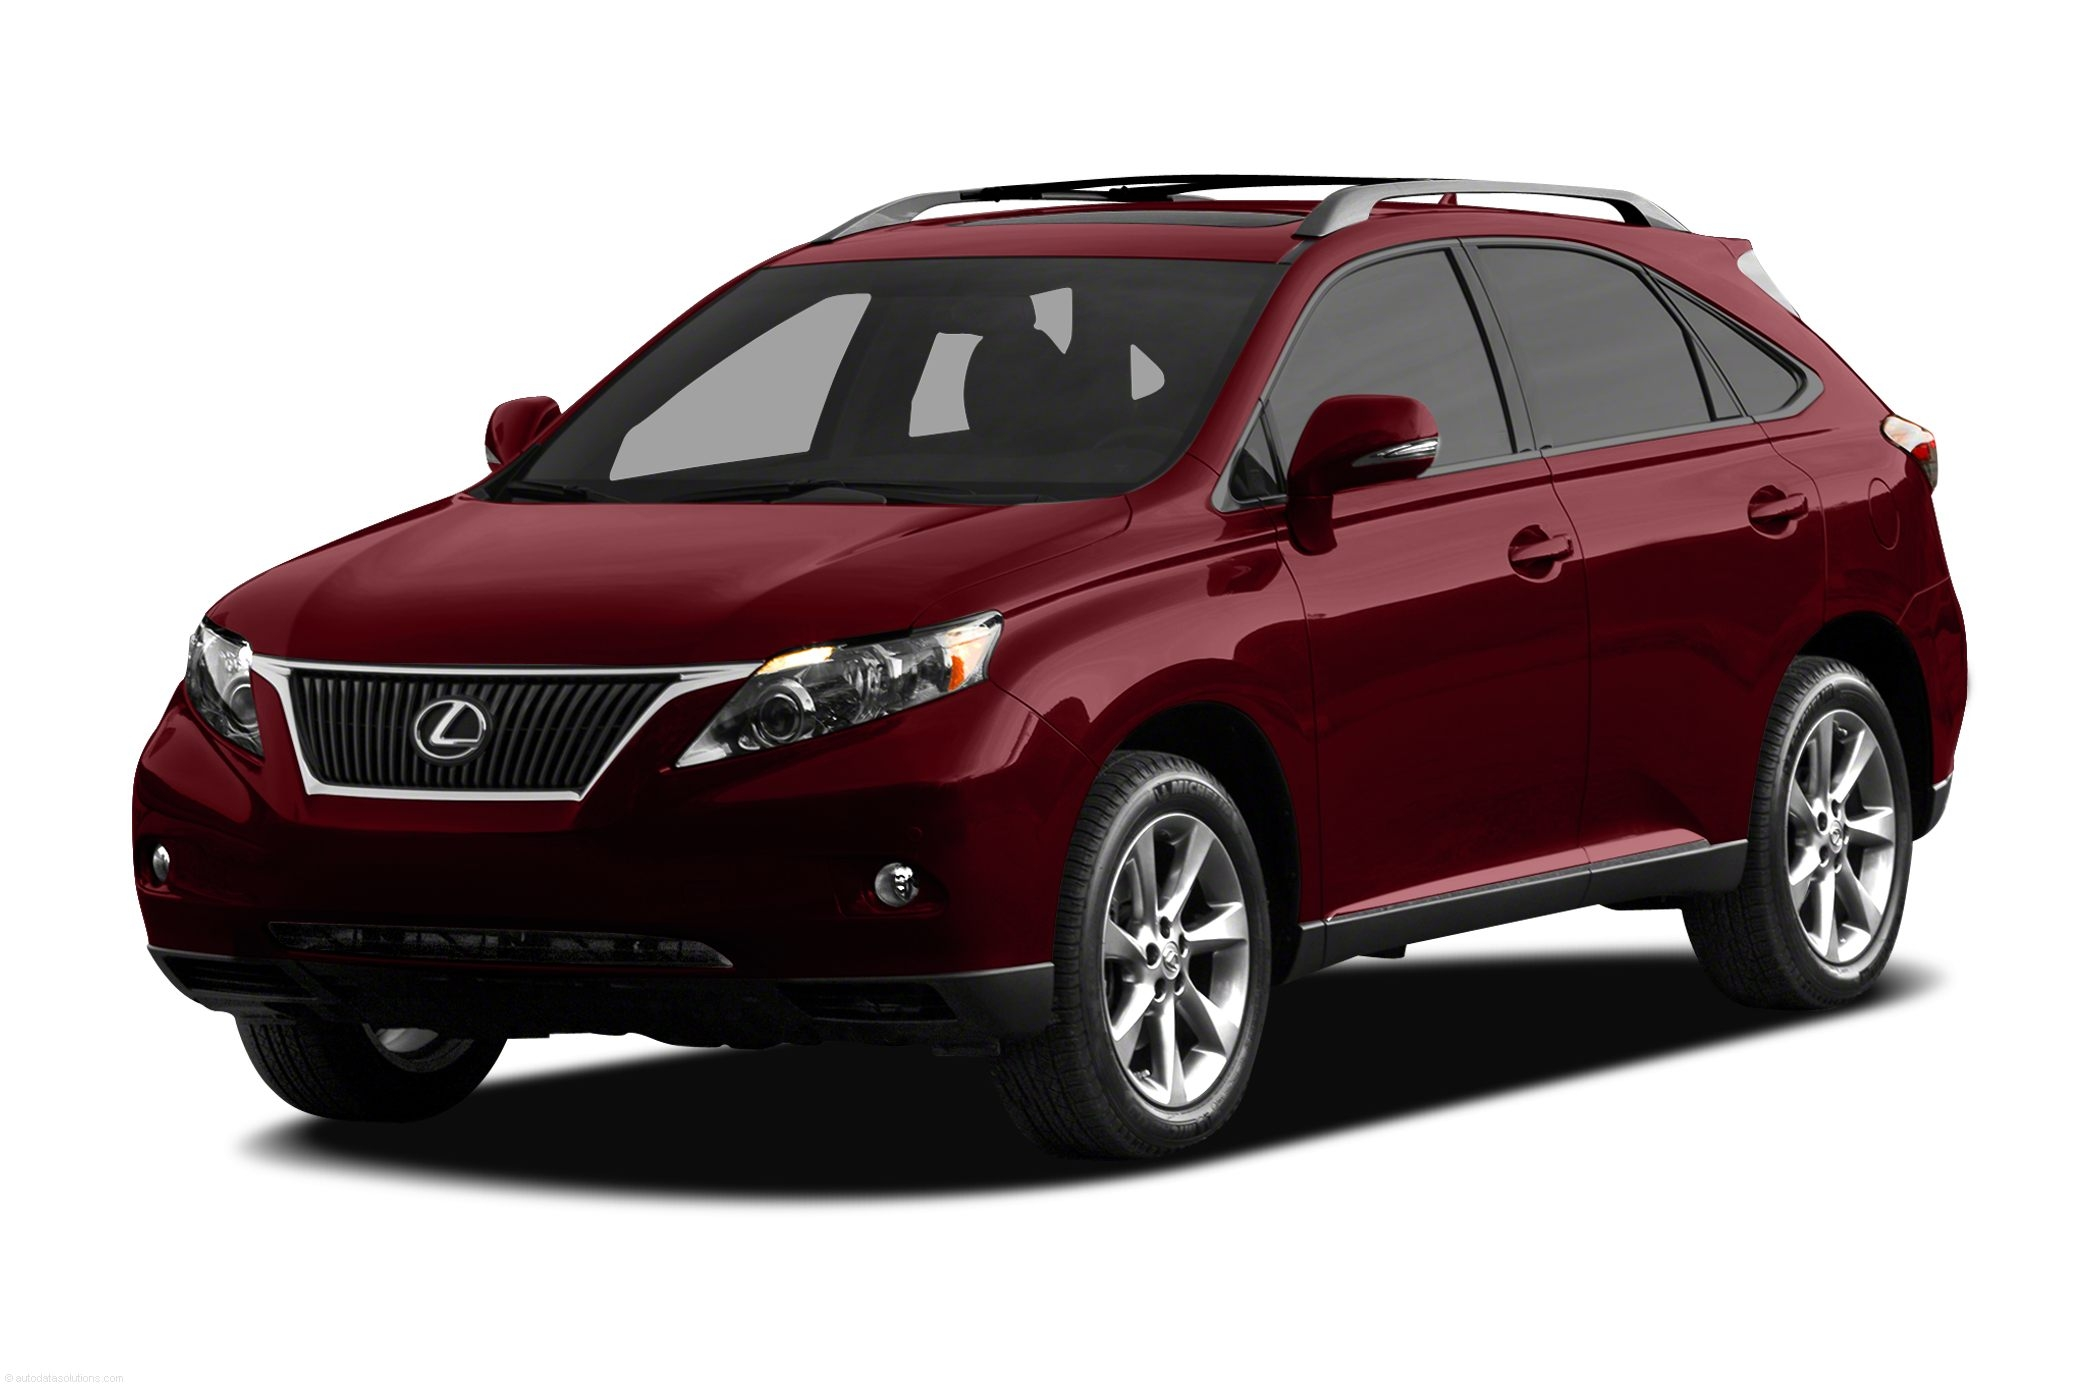 cost of lexus rx 350 pricing msrp not available invoice price not lexus rx 350 invoice price